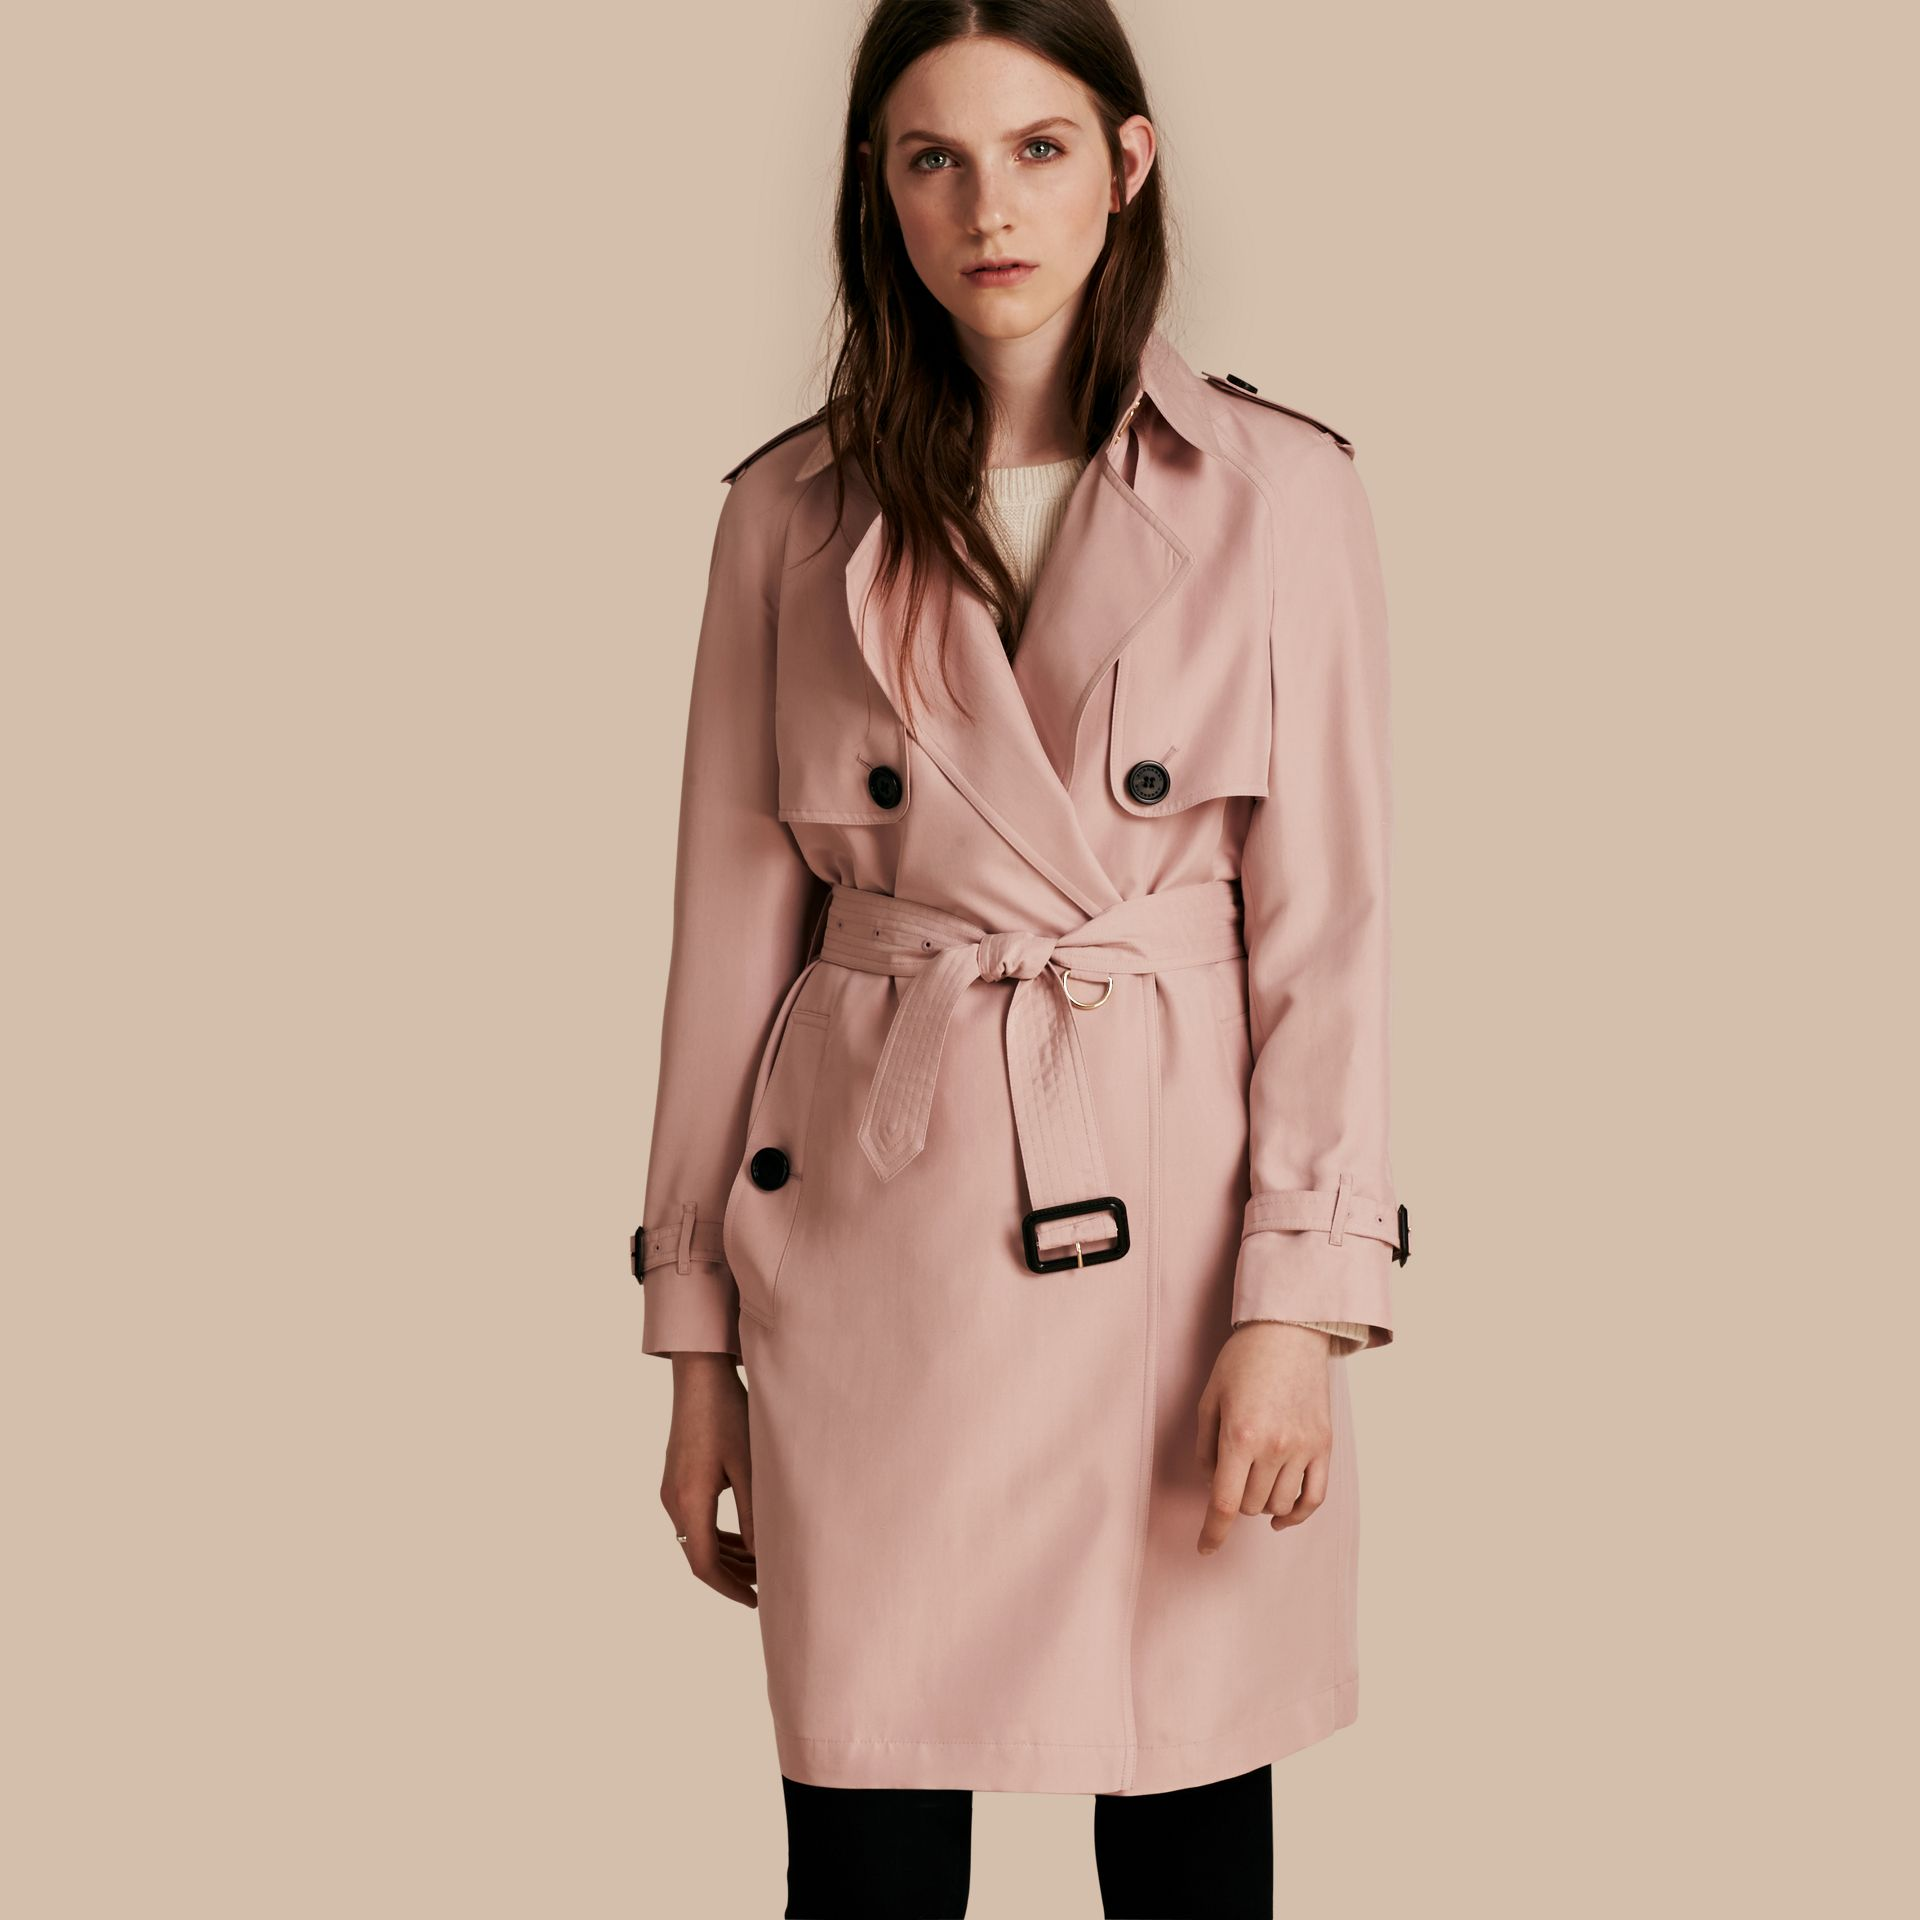 Rose craie Trench-coat portefeuille léger en soie flammée - photo de la galerie 1